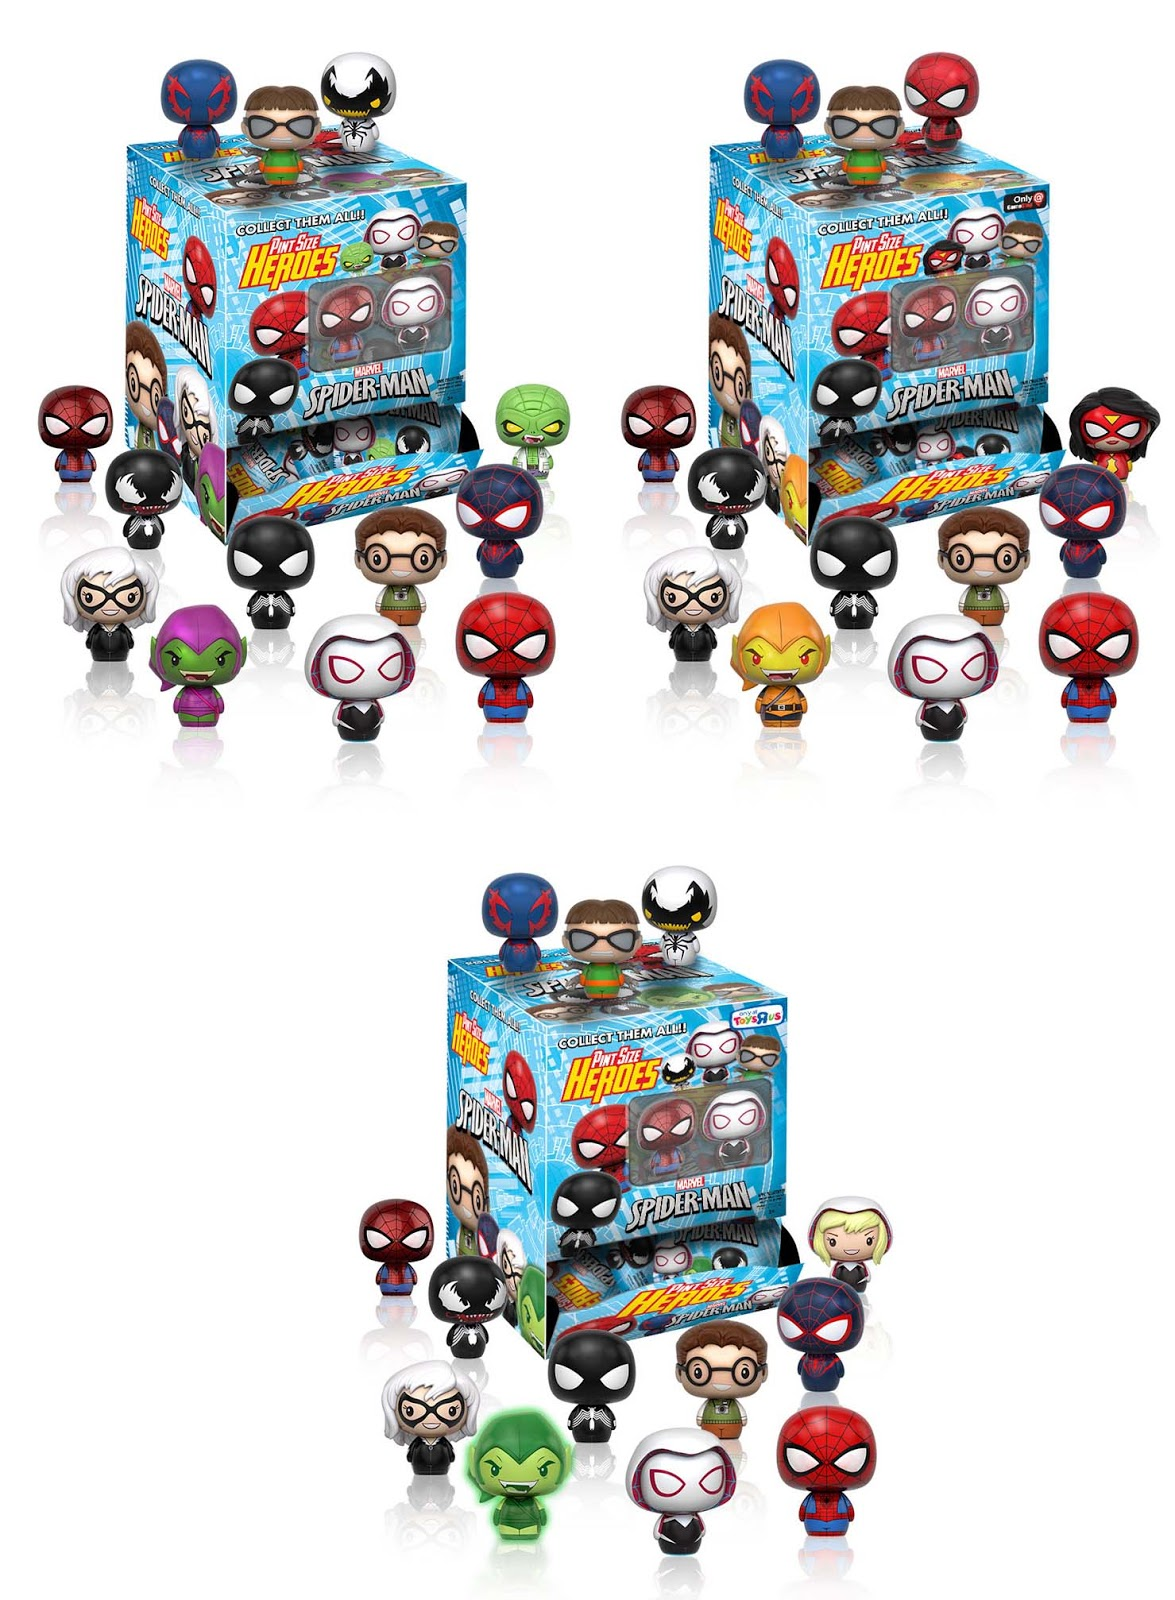 Collecting Toyz Funko Announces Pint Size Heroes Tony Hawk Circuit Boards By Hexbug Power Axle Set Innovation First The Ones To Be Released Will Dc Mini Figures Which Of Course Blind Bag These In September Gamestop Hot Topic Have